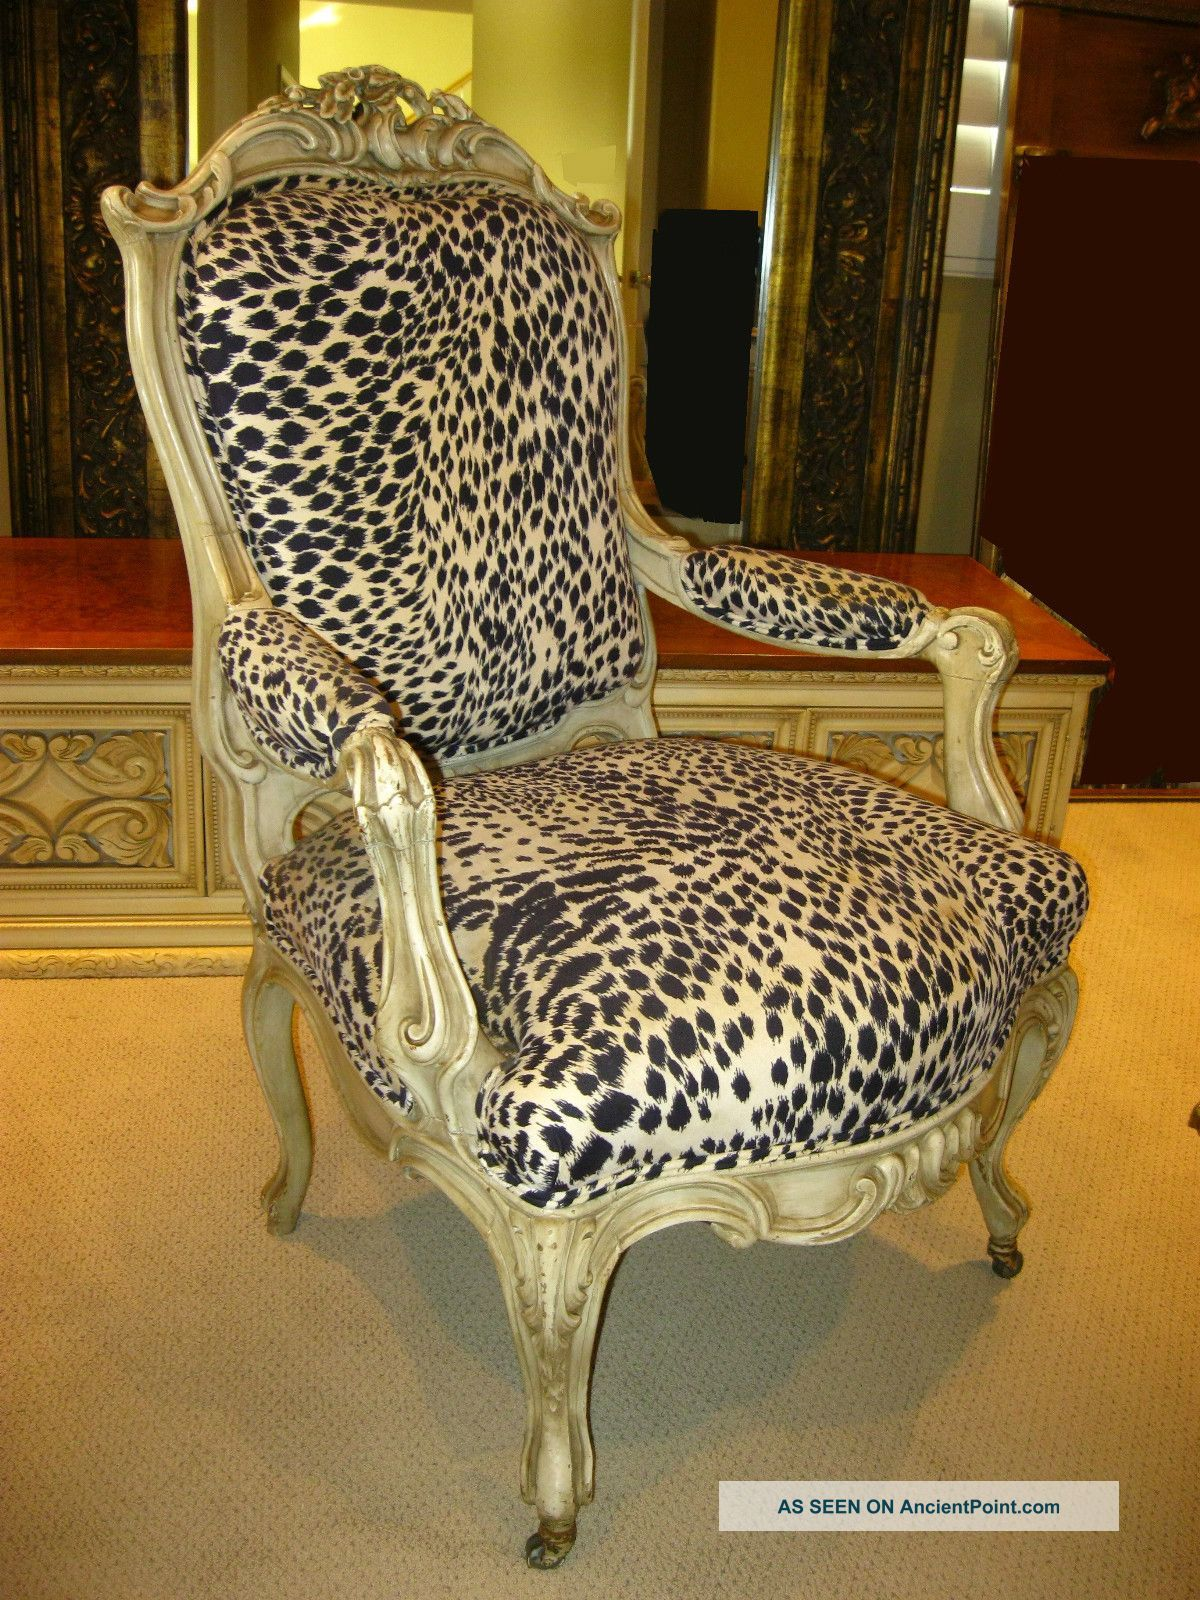 Cheetah Chair French Provincial Hollywood Regency White Leopard Print